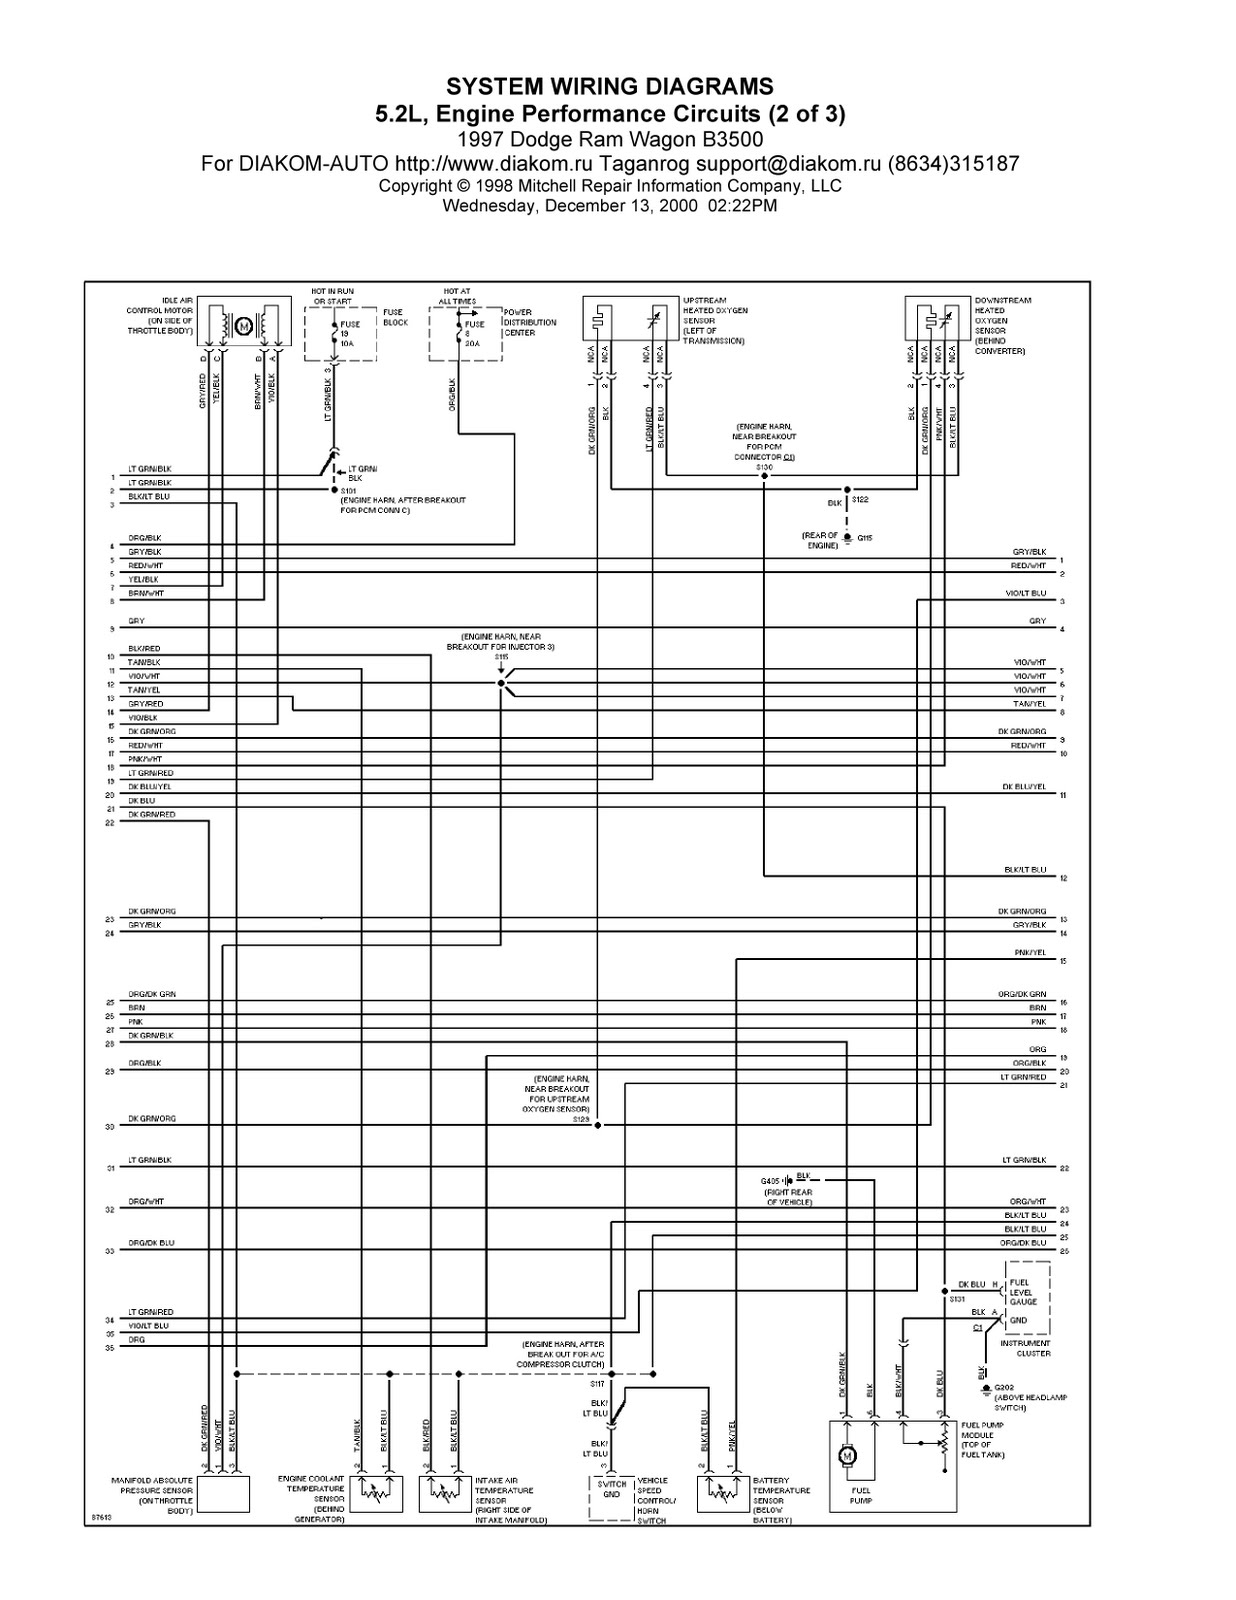 Wiring Diagram Furthermore 2001 Dodge Ram Diesel 2500 Vacuum Diagram